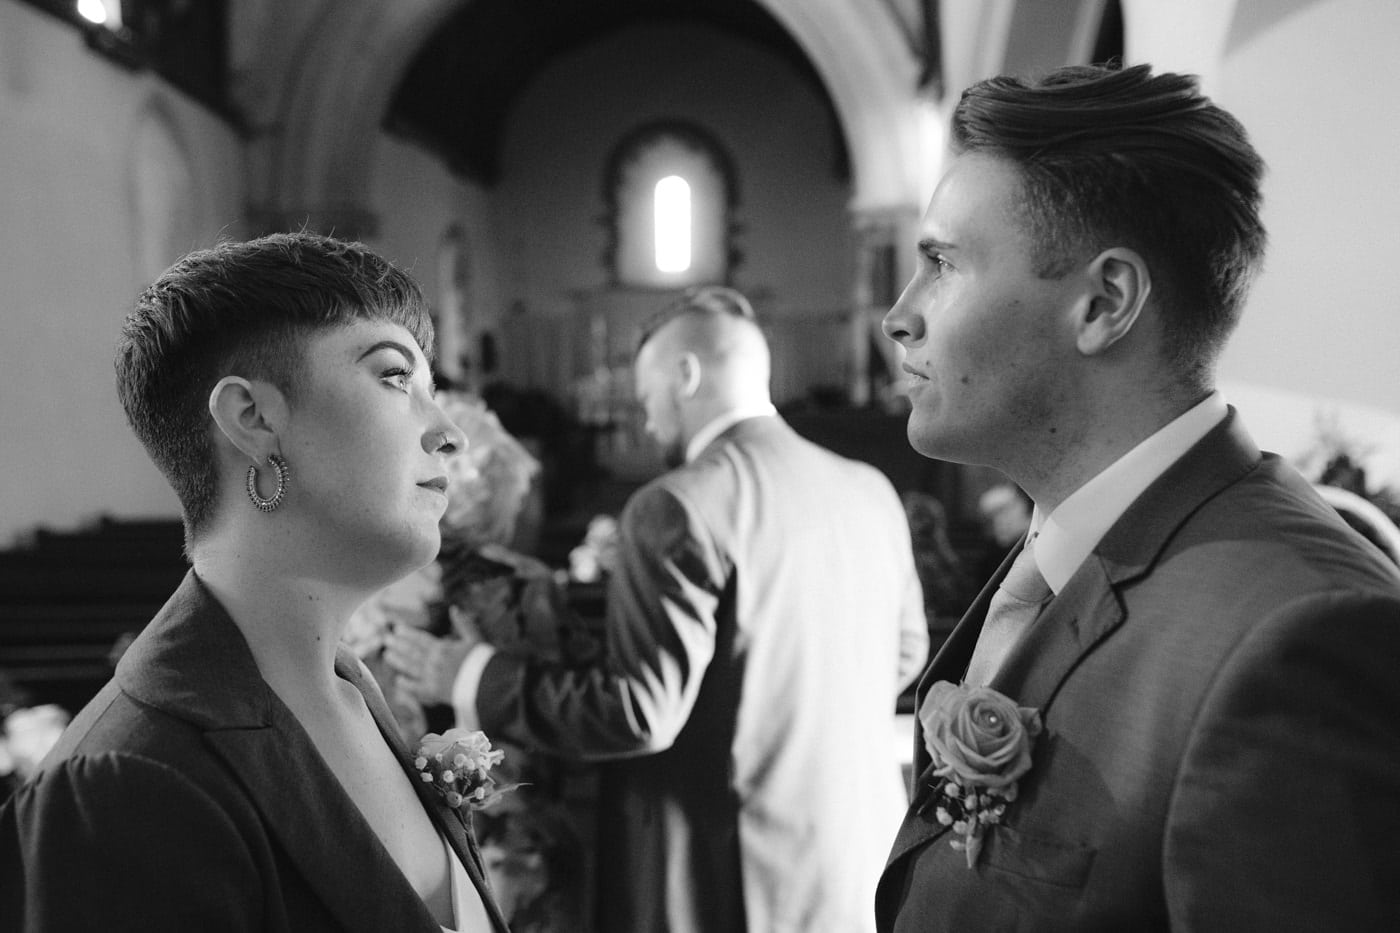 Guests Captured at Main Wedding Church Hall Photography Portrait Session